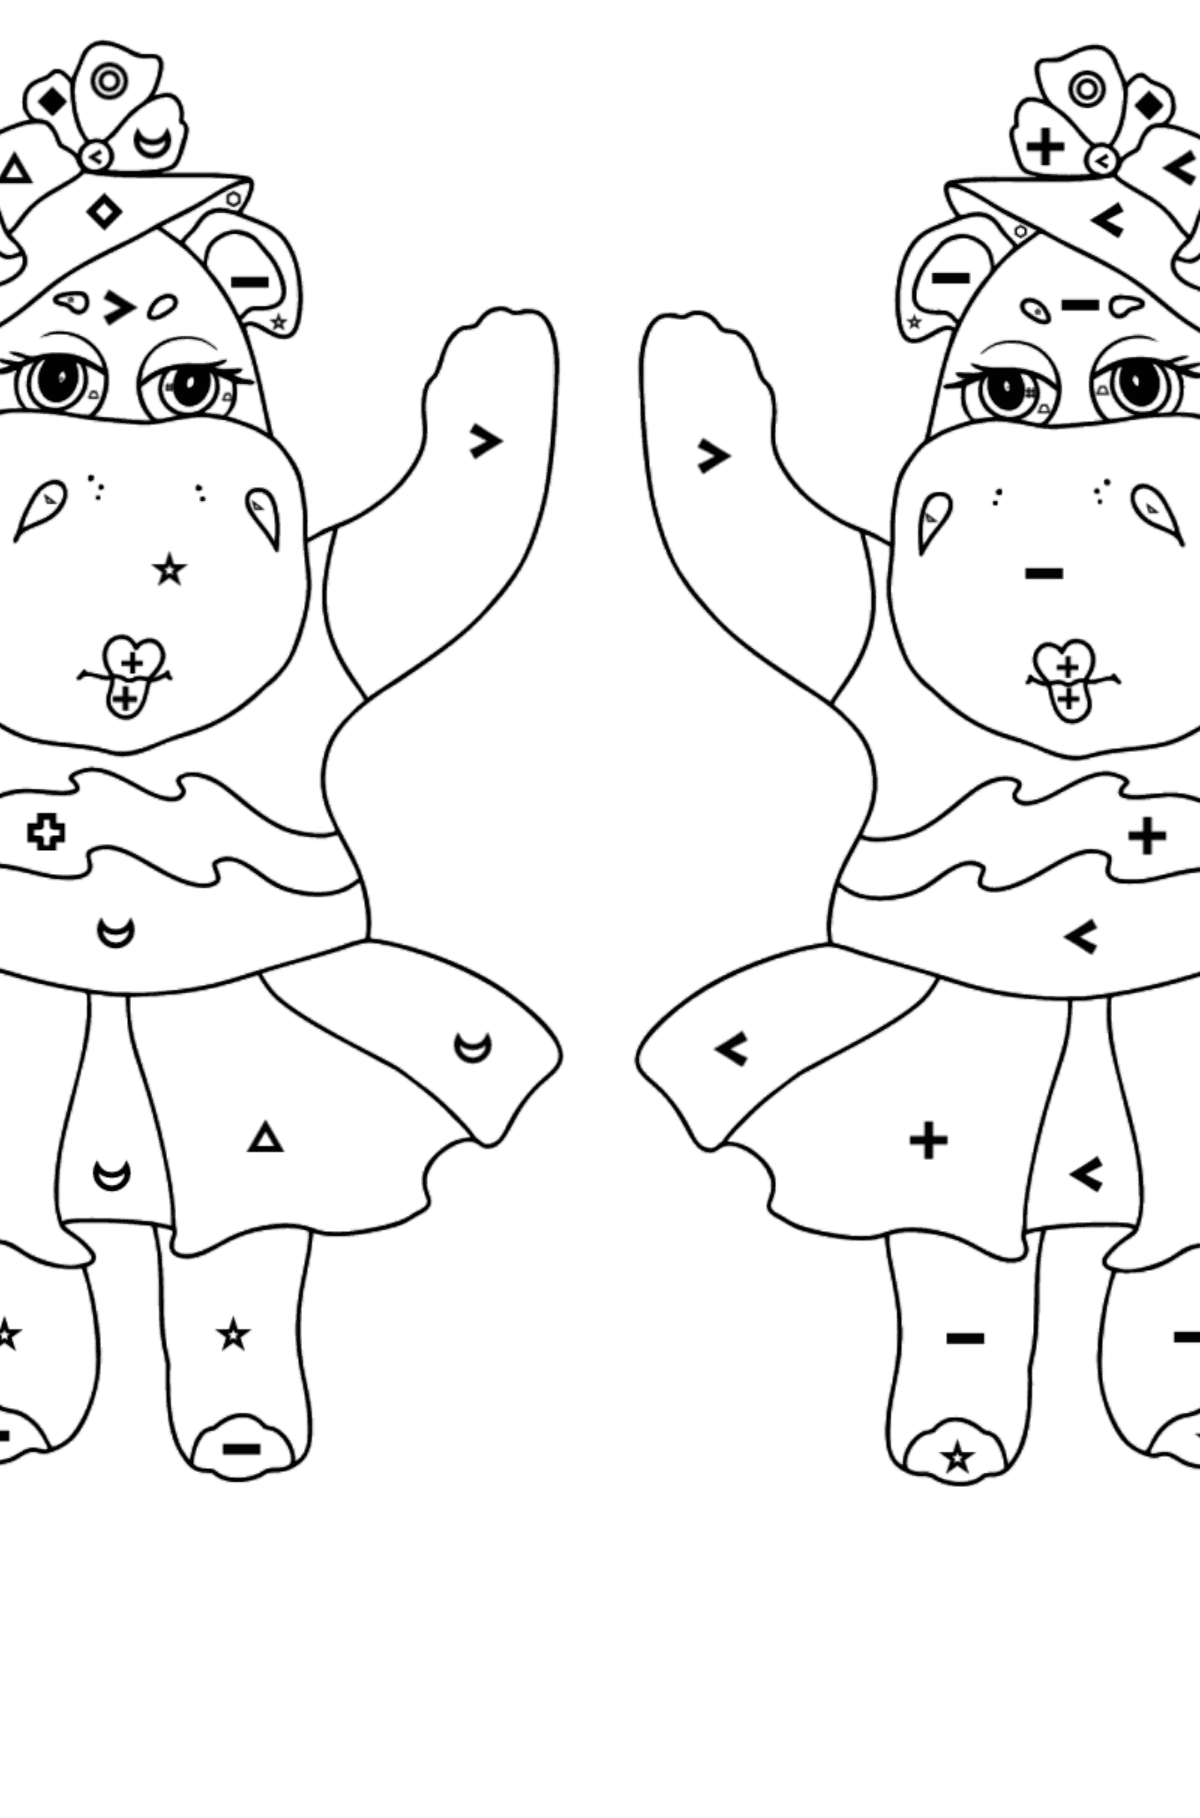 Coloring Page - Hippos are Harvesting the Crops - Coloring by Symbols and Geometric Shapes for Kids